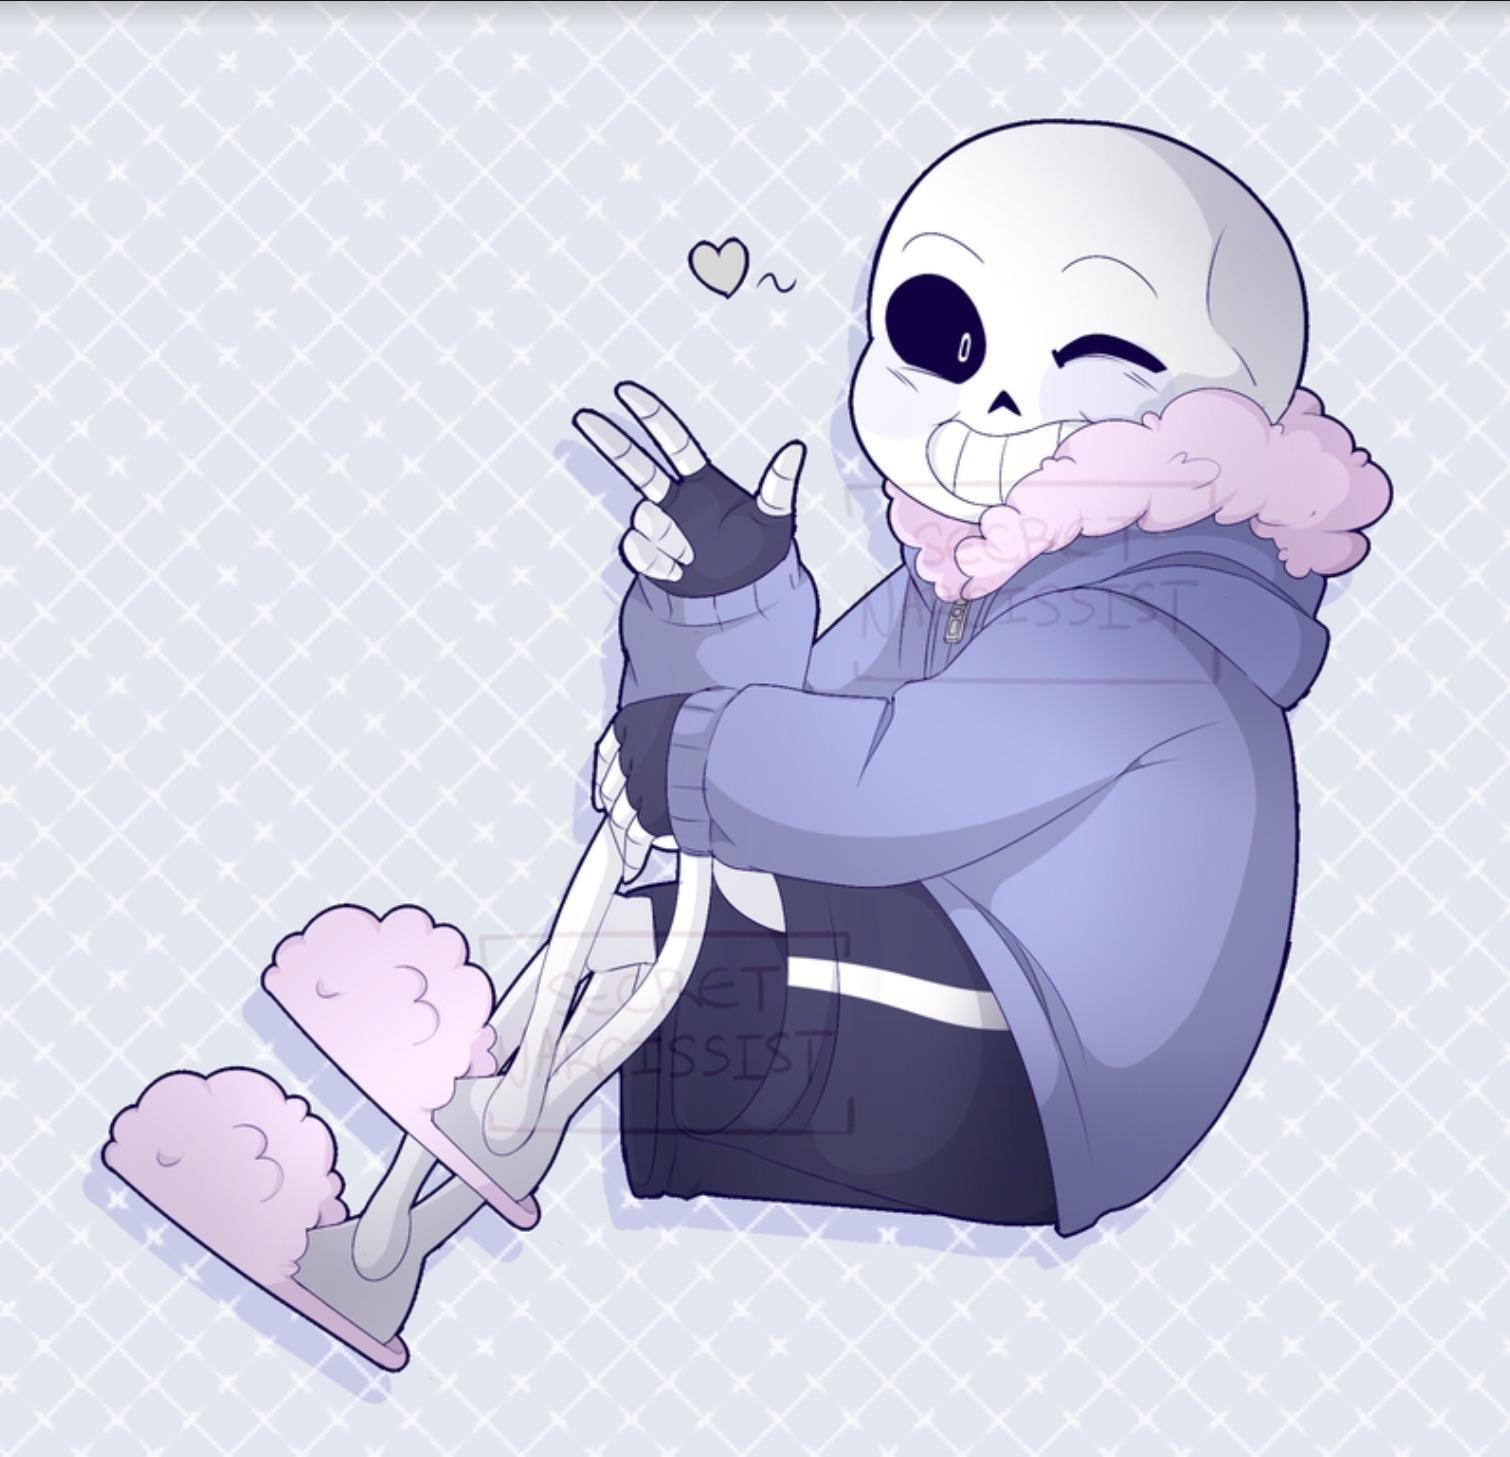 Who do you ship with Sans?